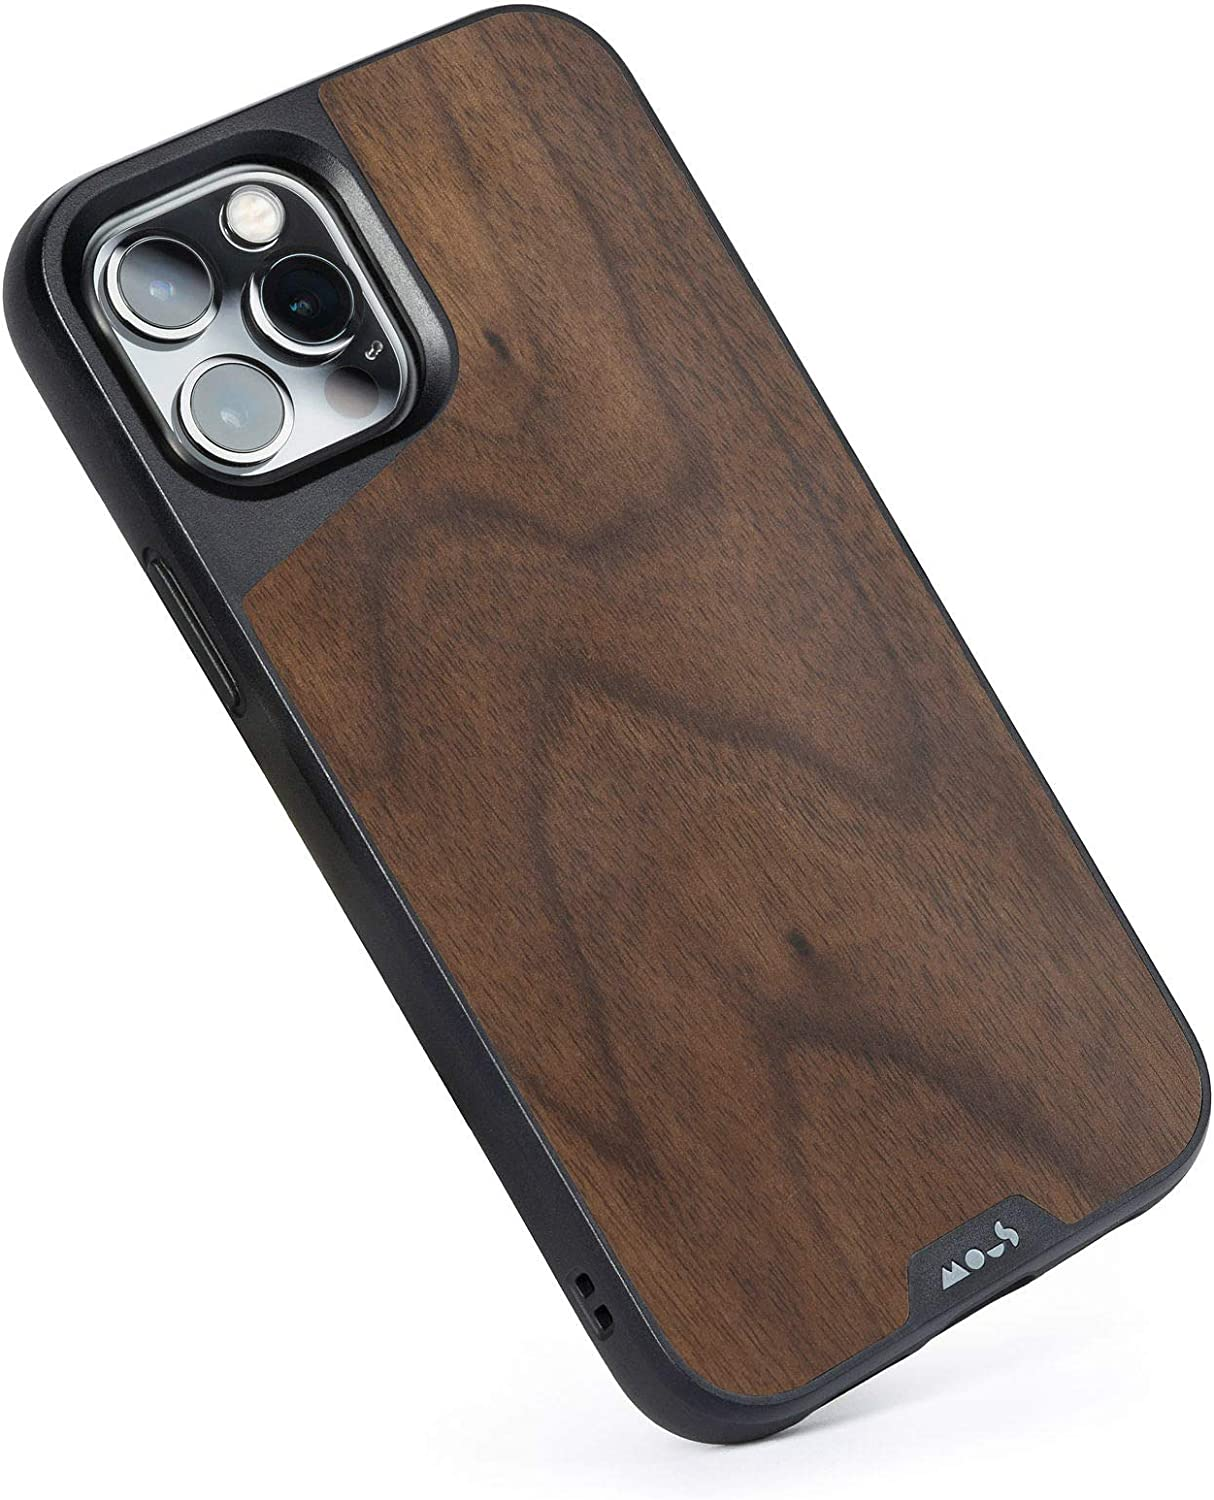 Mous - Protective Case for iPhone 12 Pro Max - Limitless 3.0 - Walnut - No Screen Protector